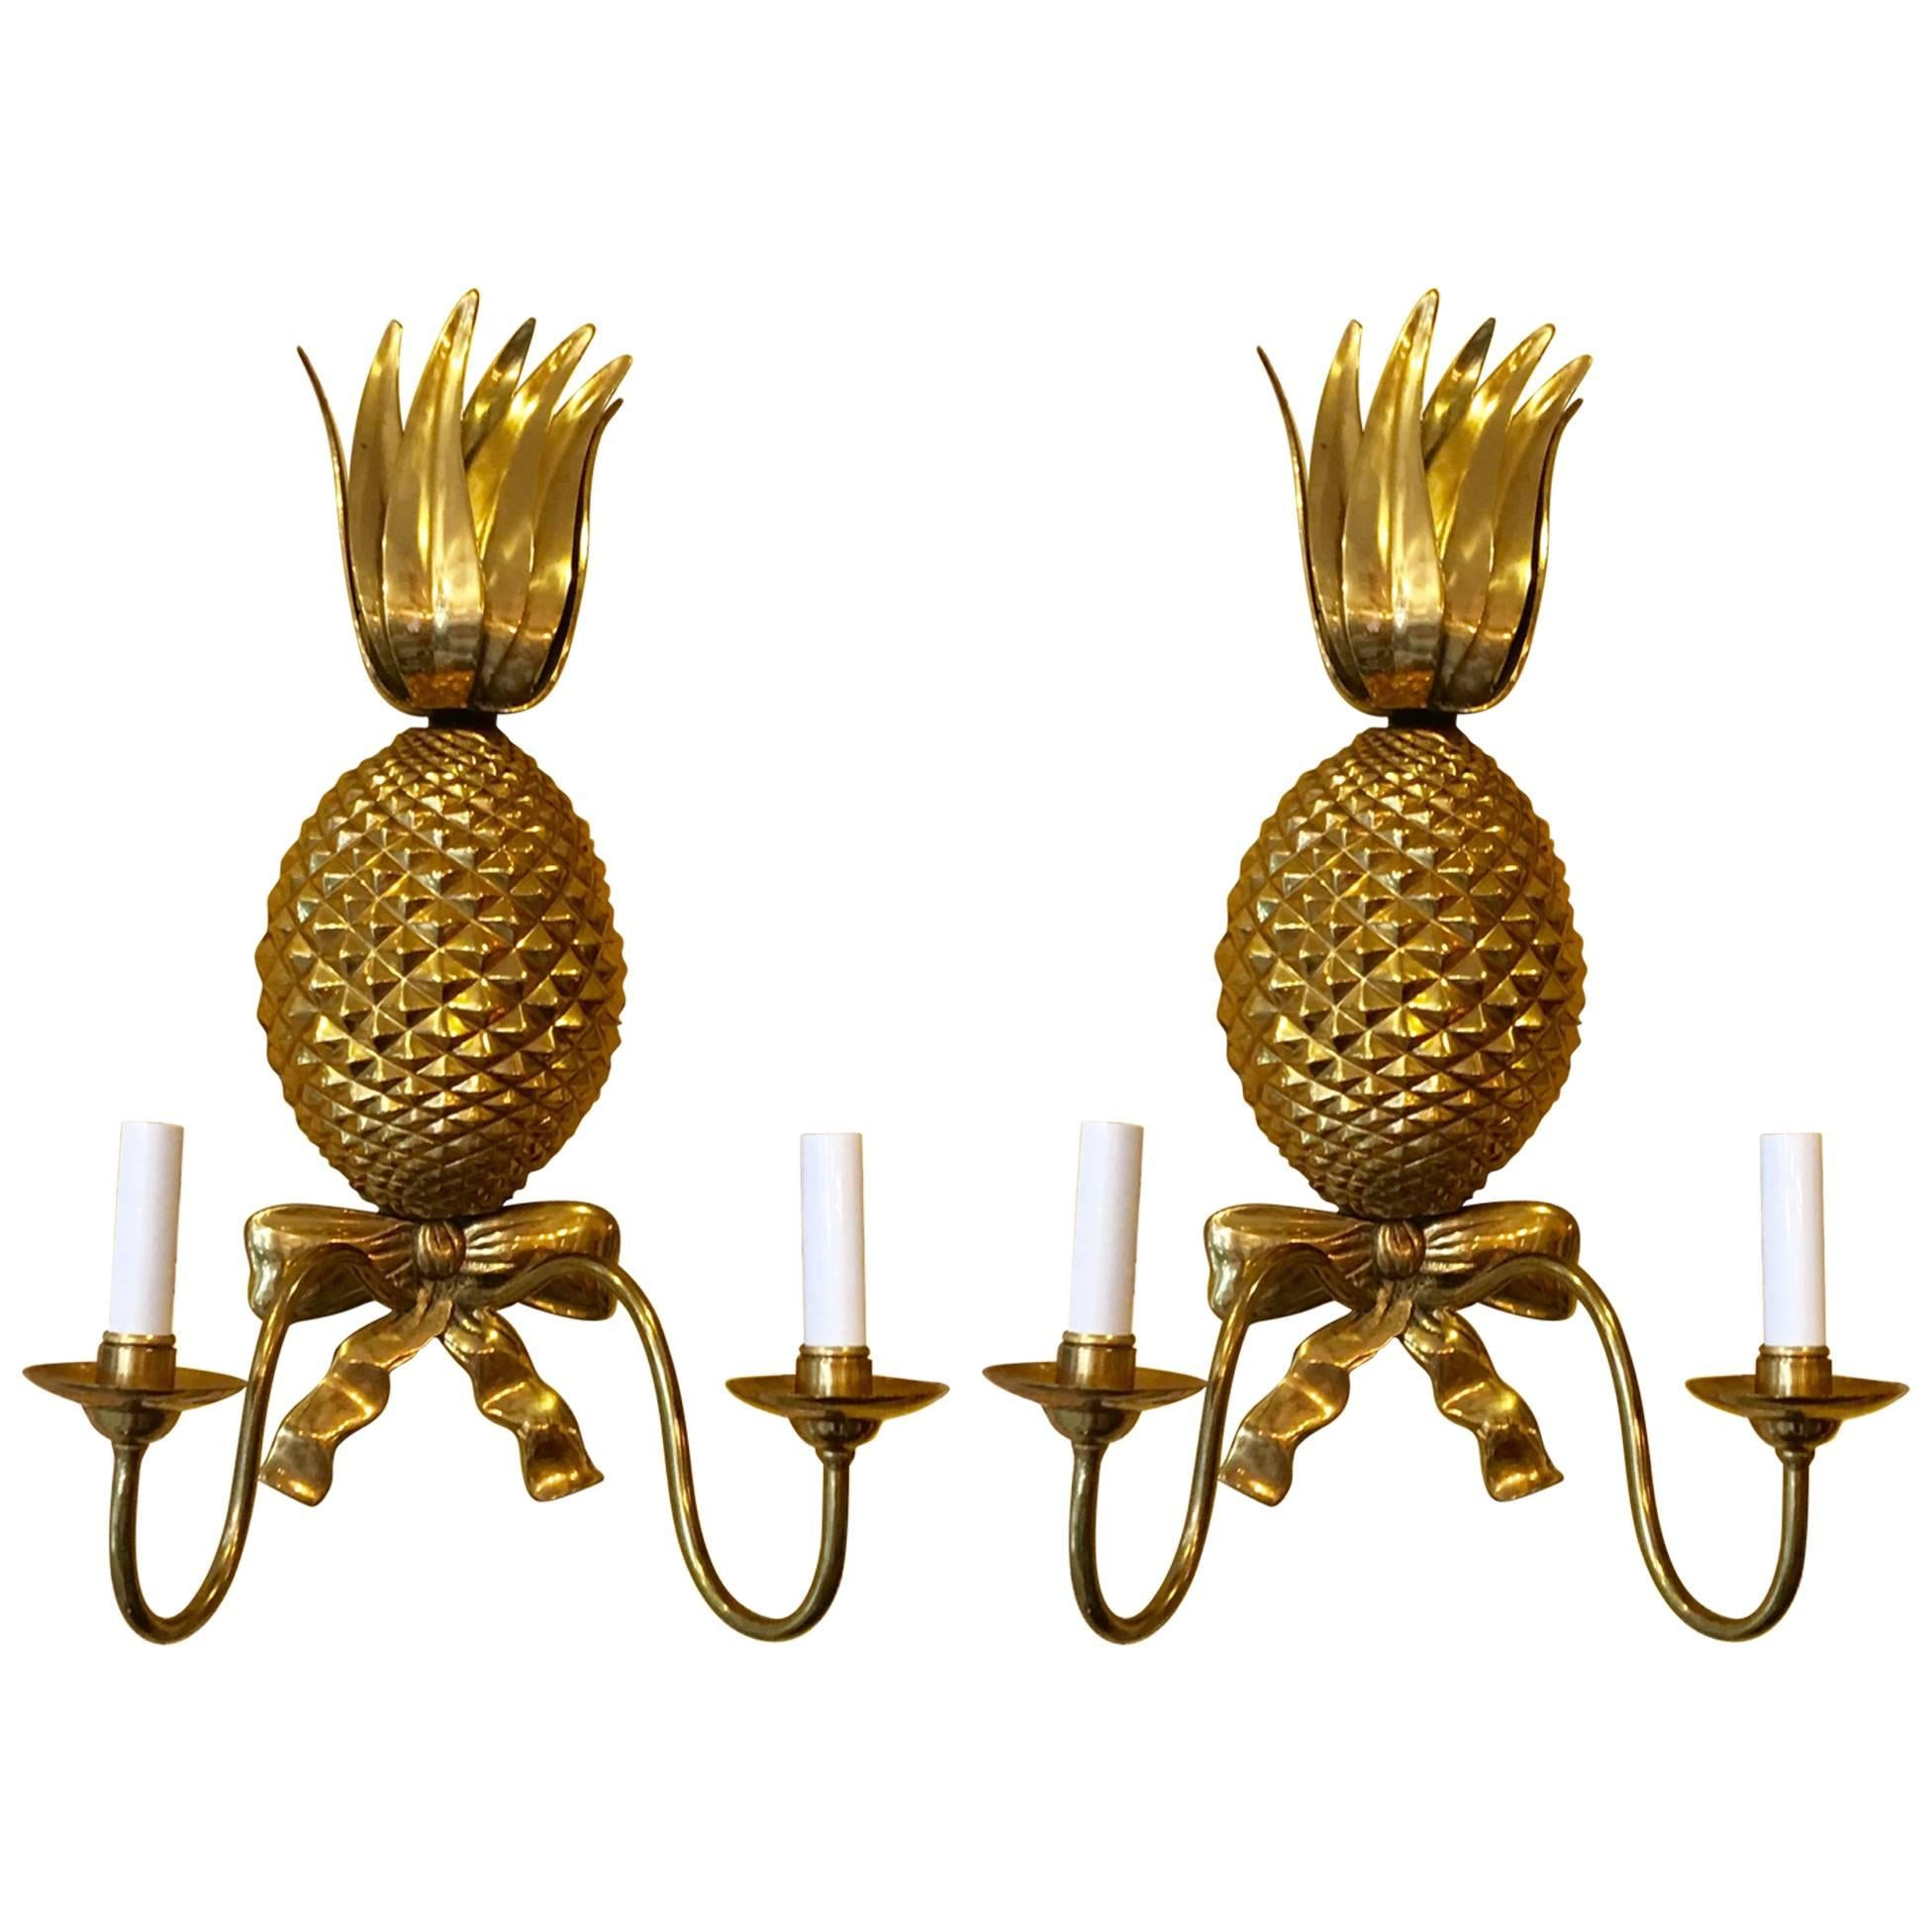 Pair of Midcentury American Brass Pineapple Sconces